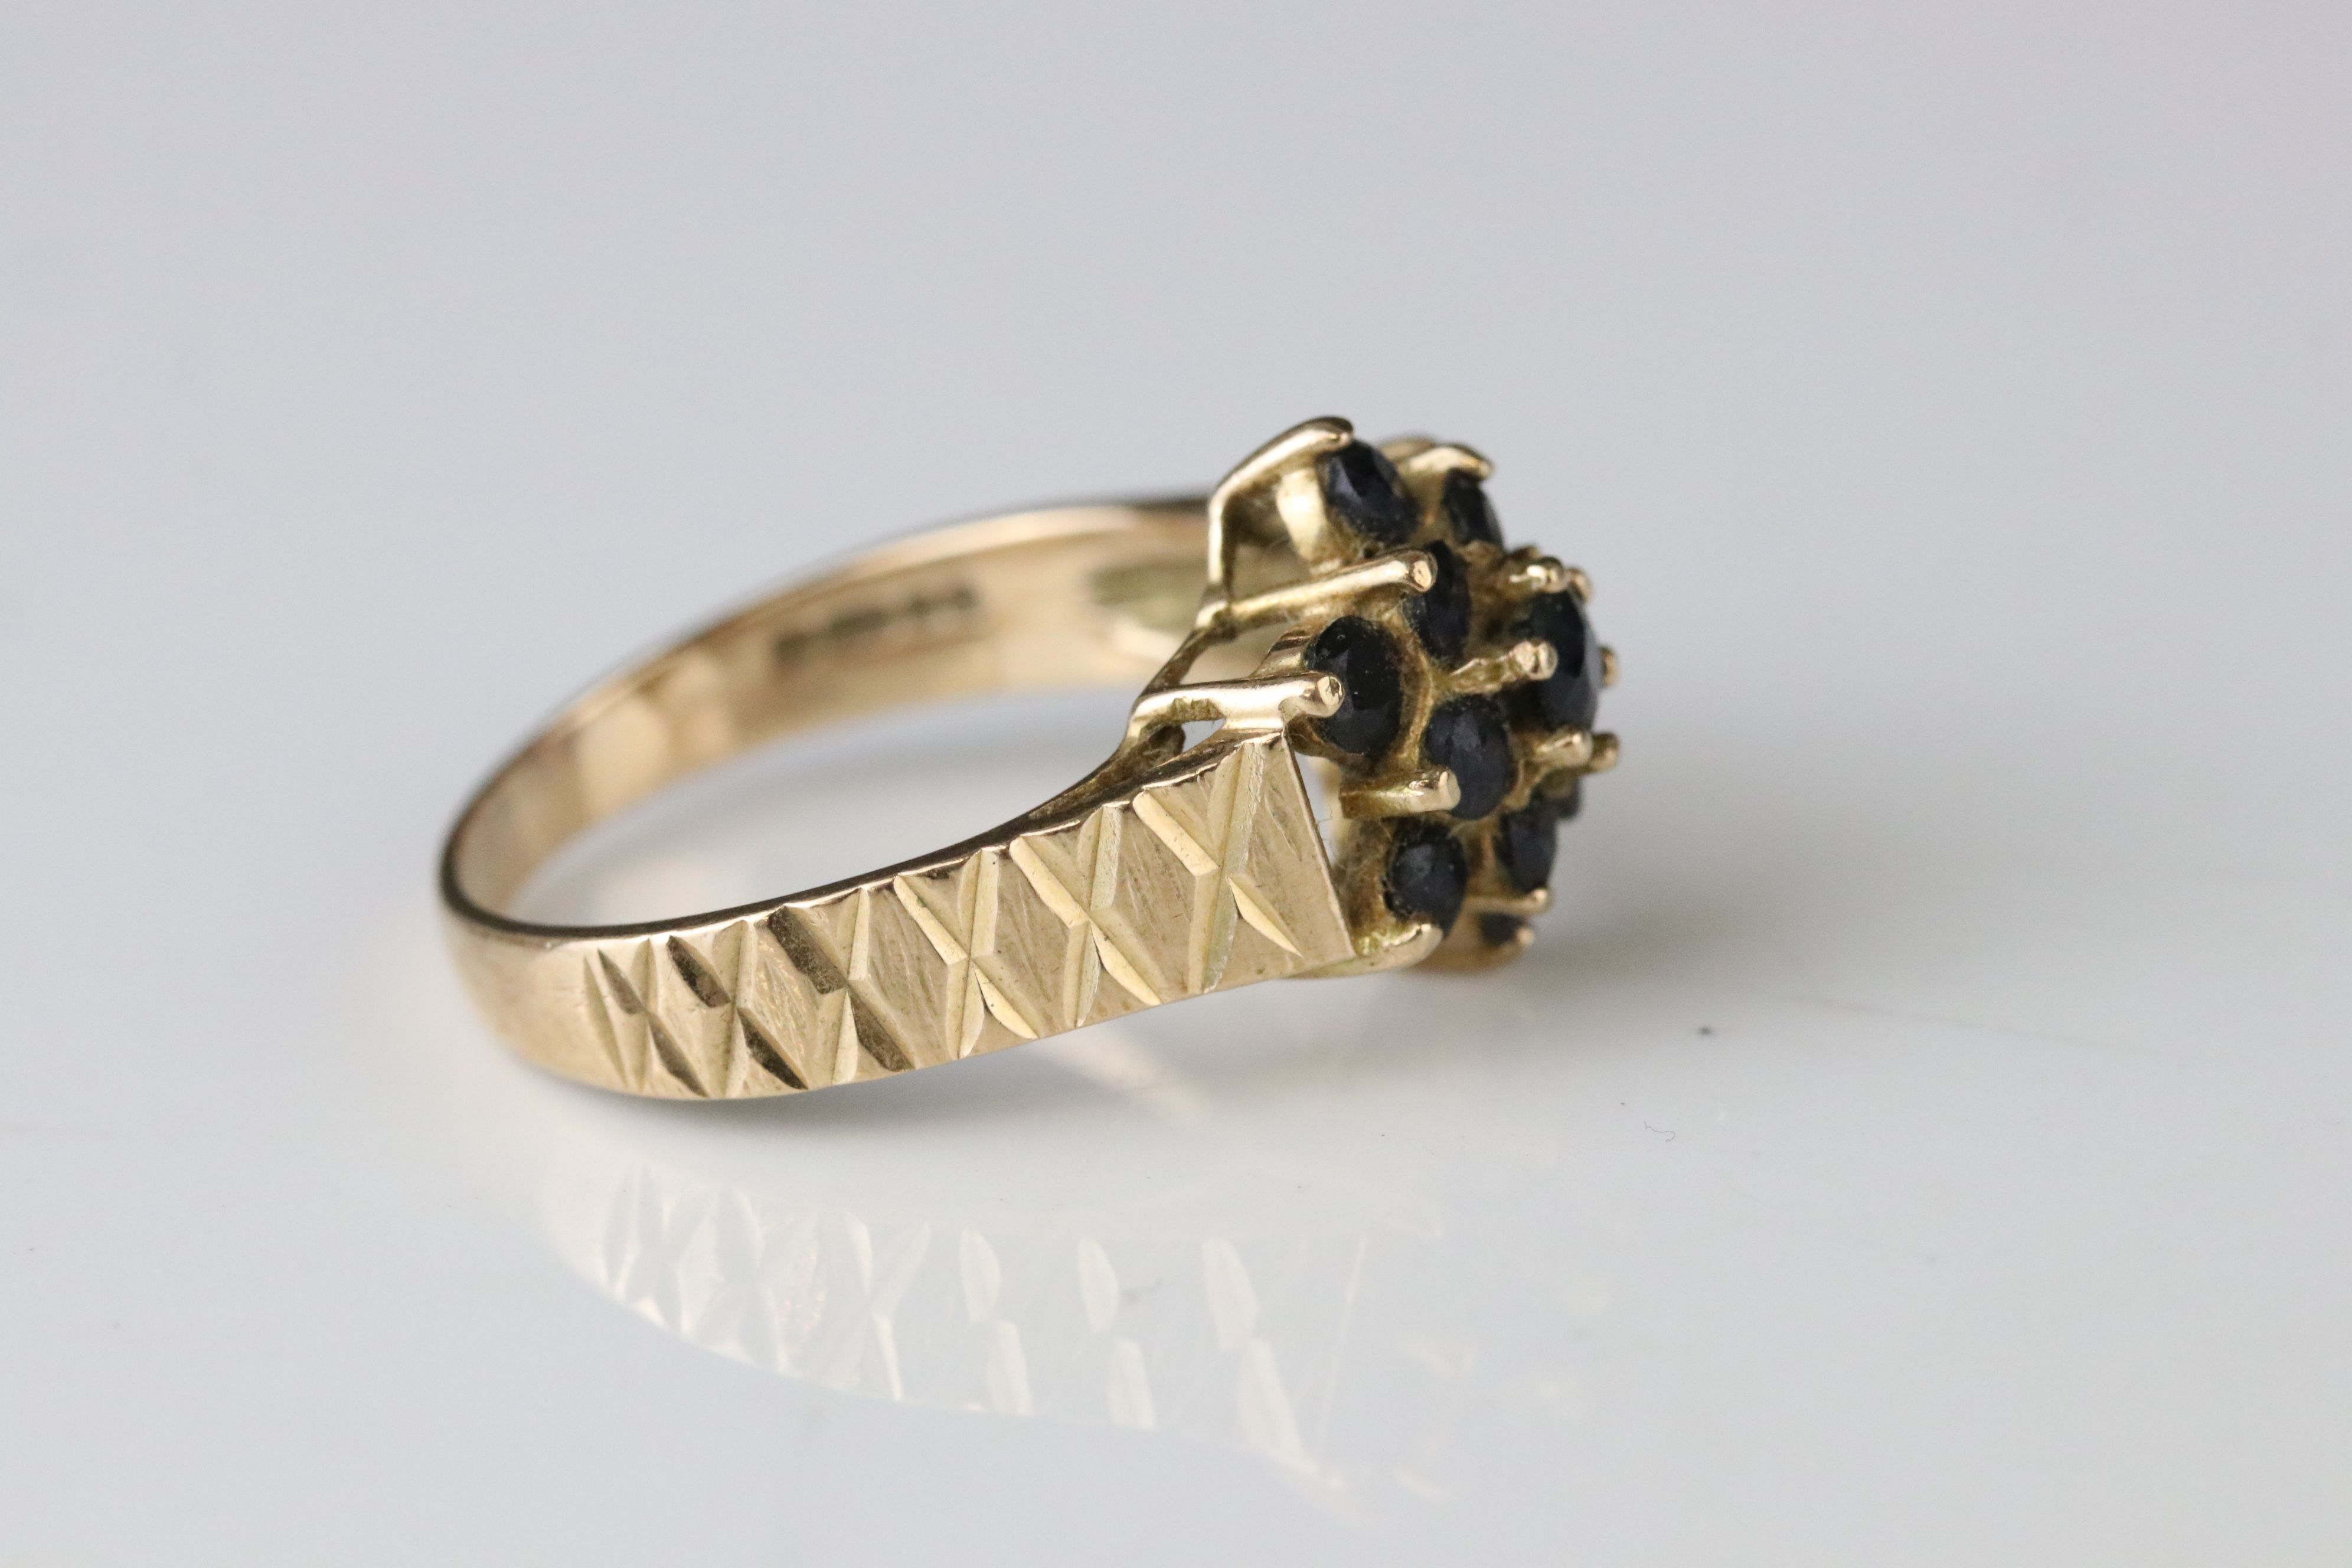 Sapphire 9ct yellow gold cluster ring, together with black sapphire and white stone 9ct yellow - Image 3 of 5